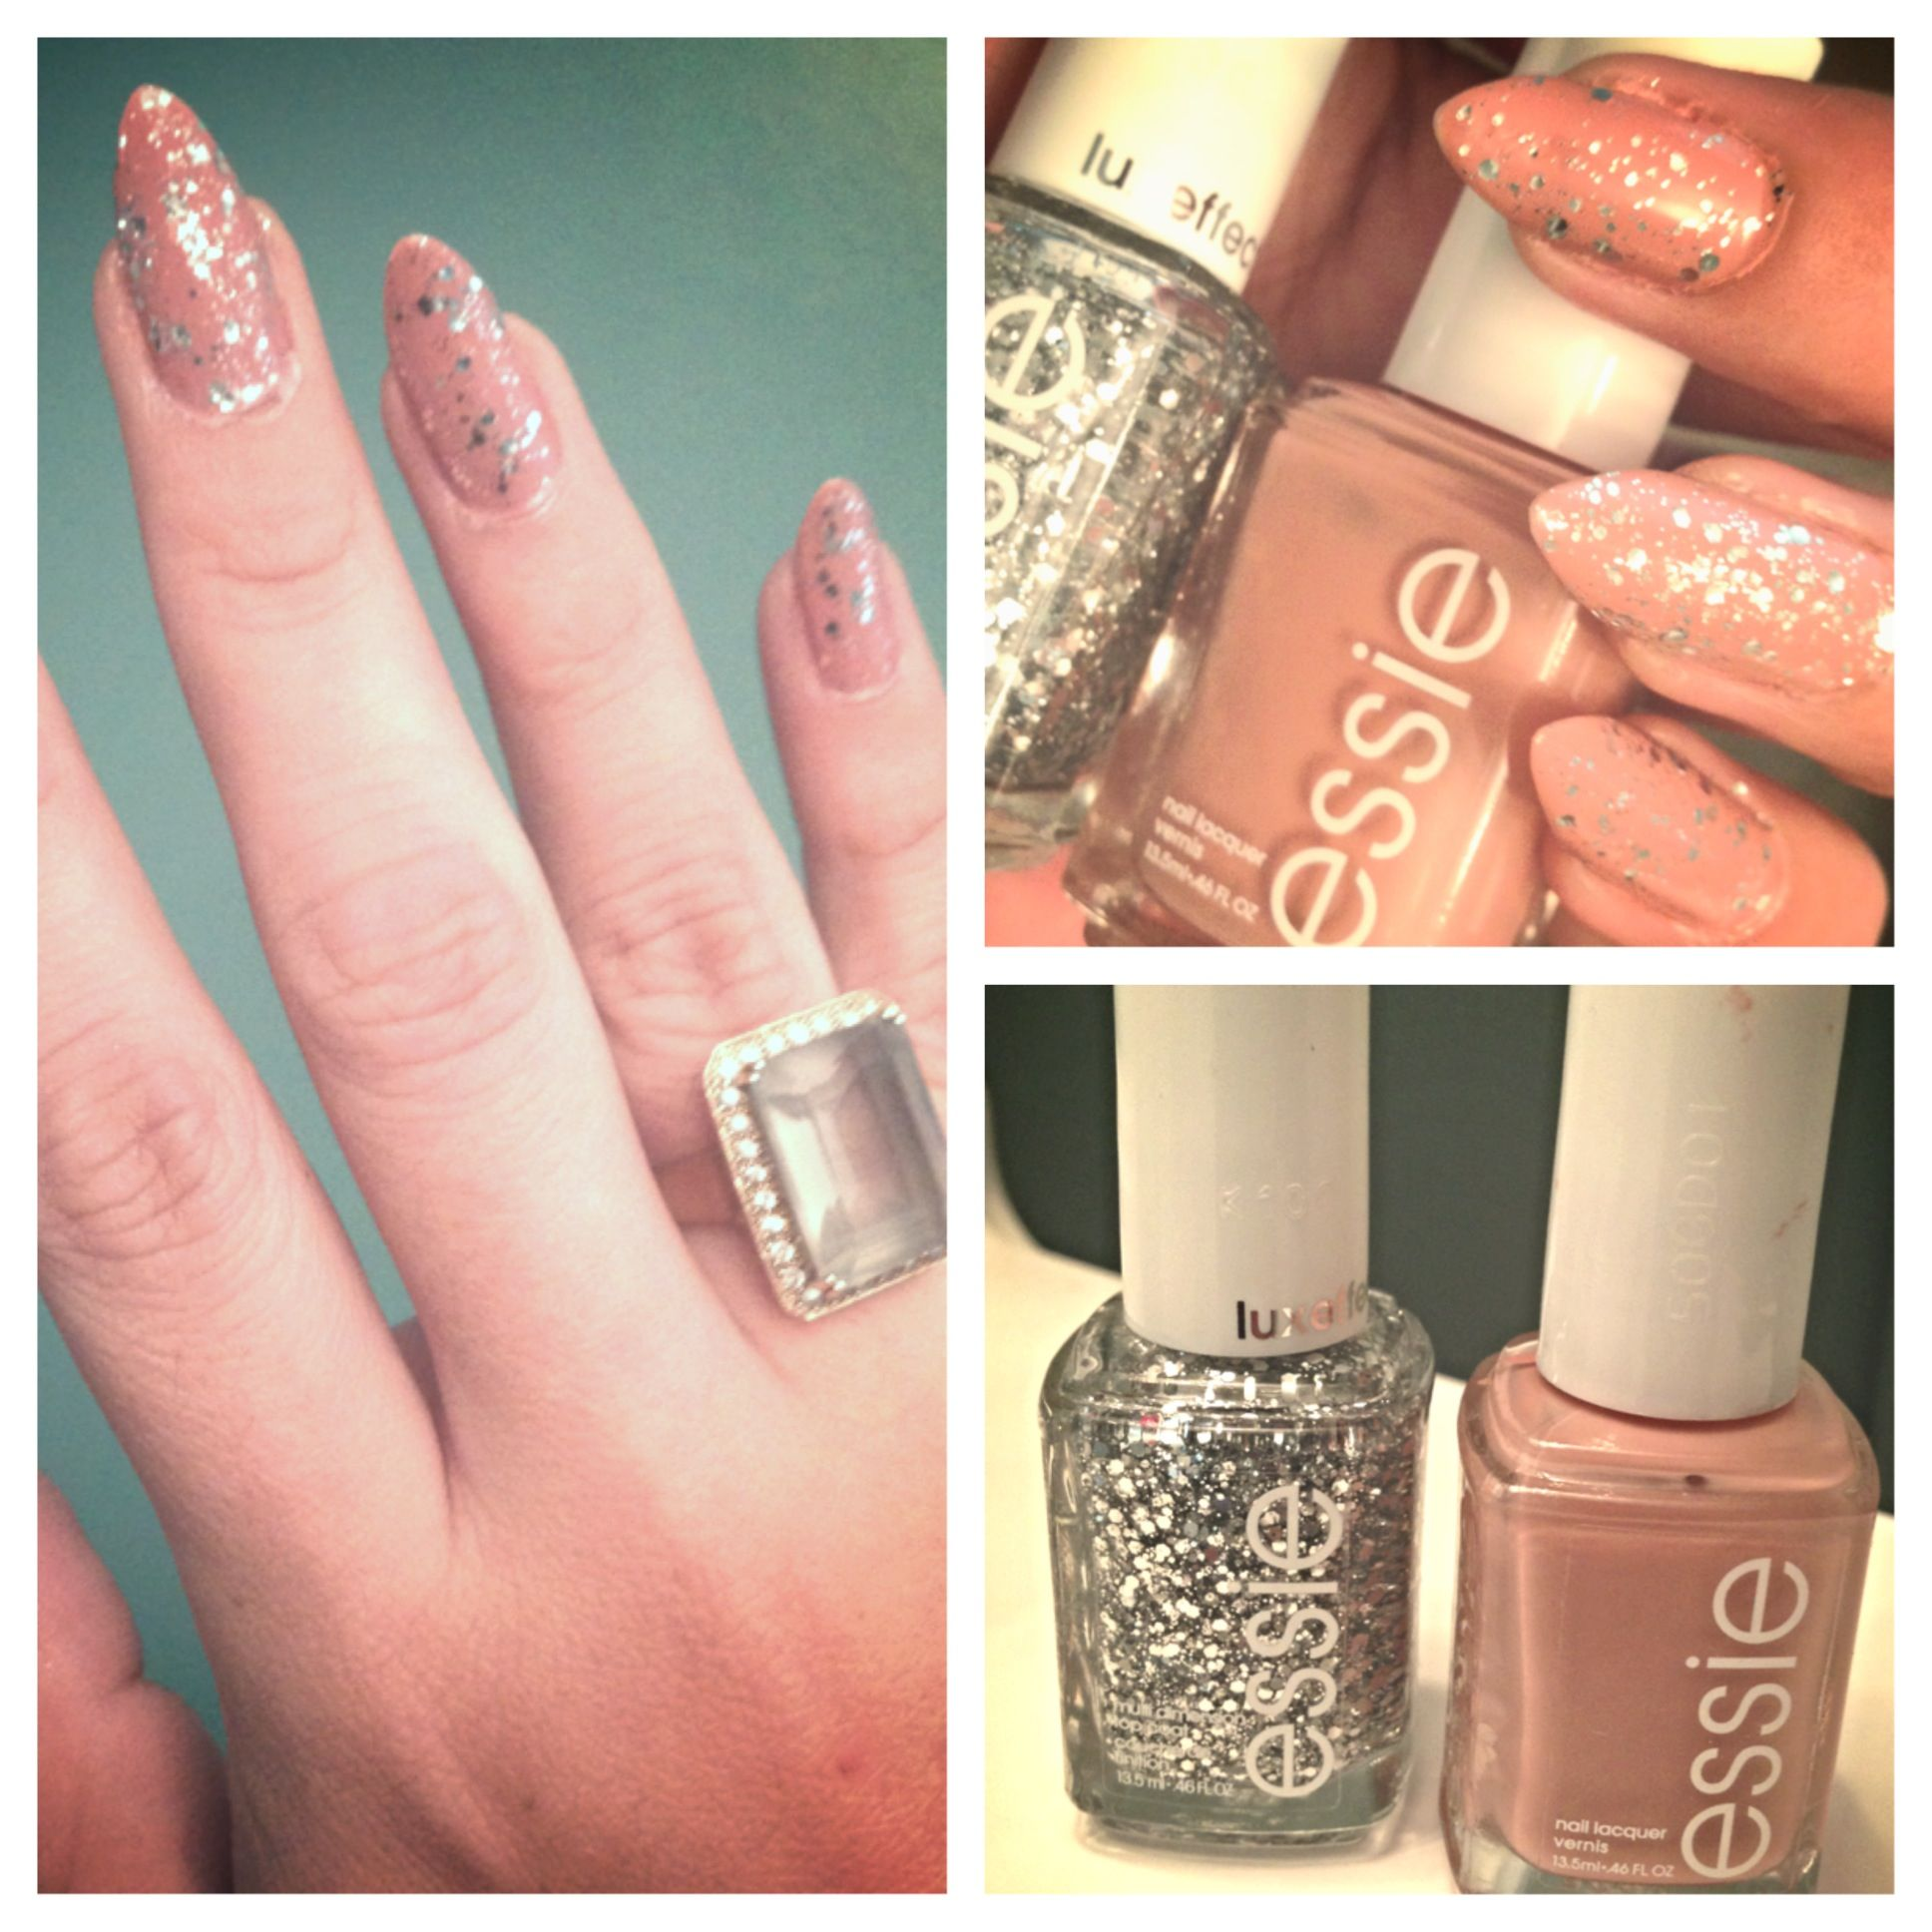 Nude nails with glitter . Fall nails 2013 essie nails . Stiletto ...